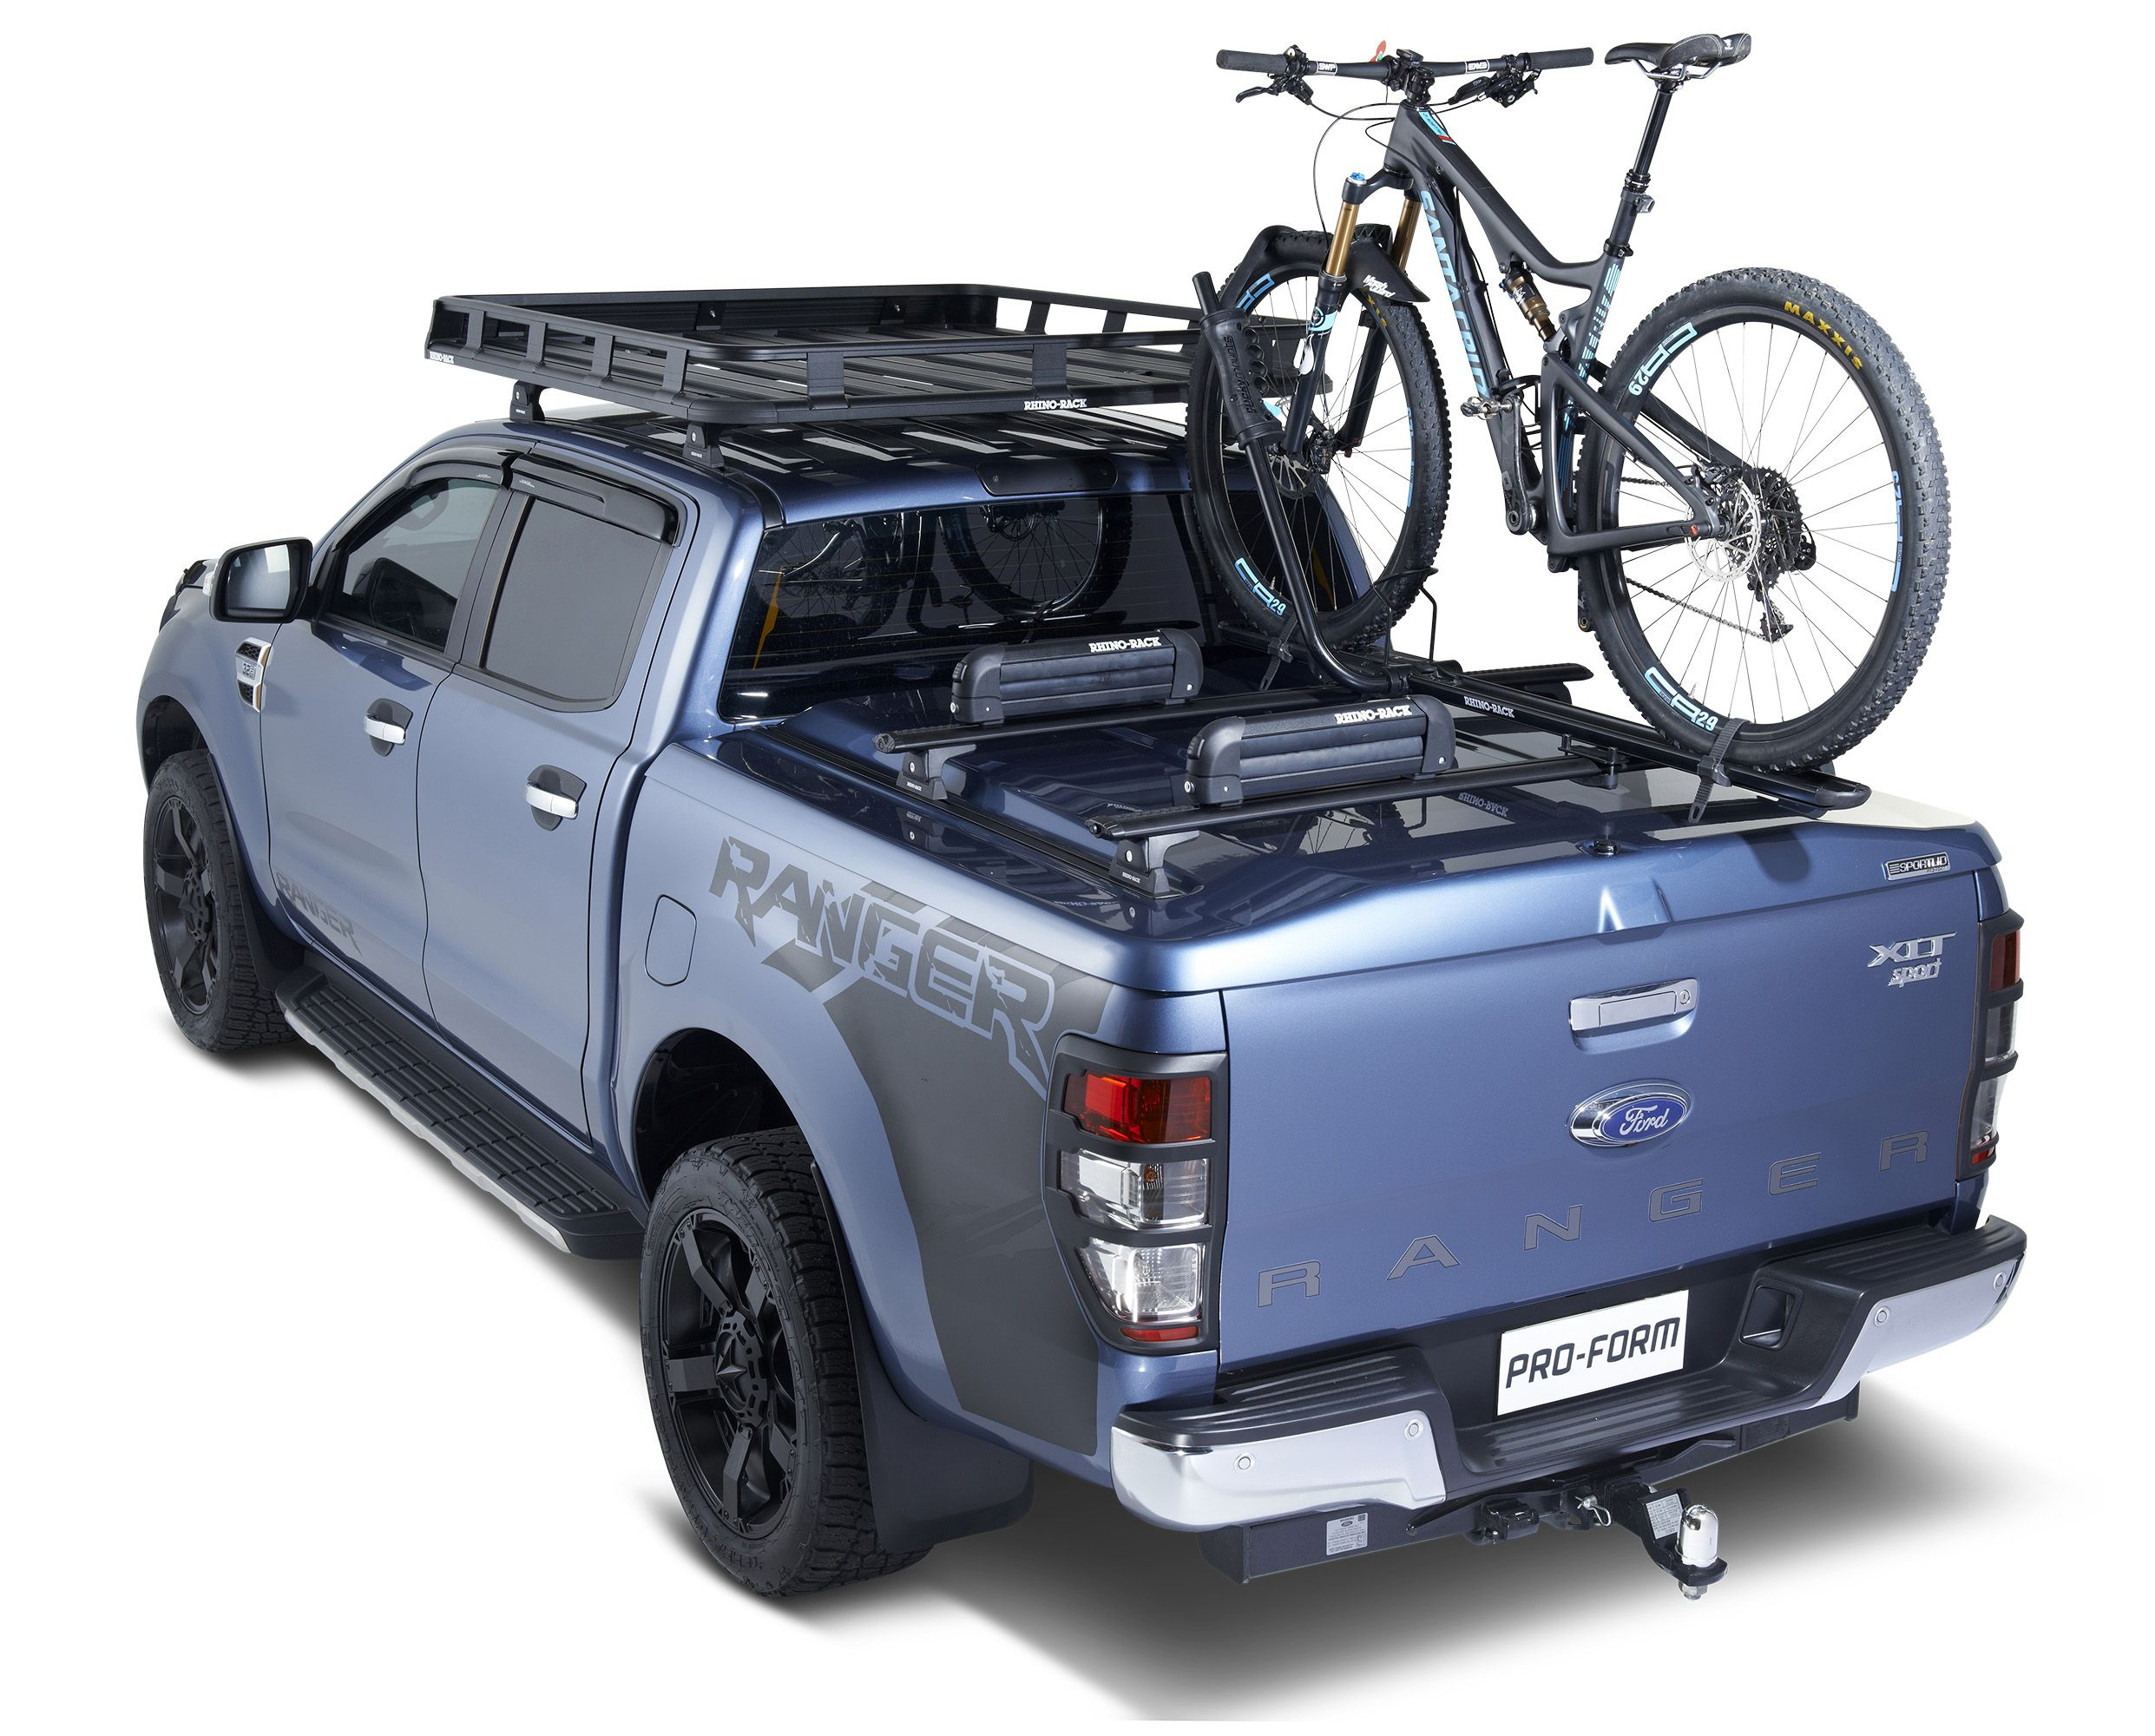 Ford Ranger Ready For Anything With Roof Racks And Tonneau Cover